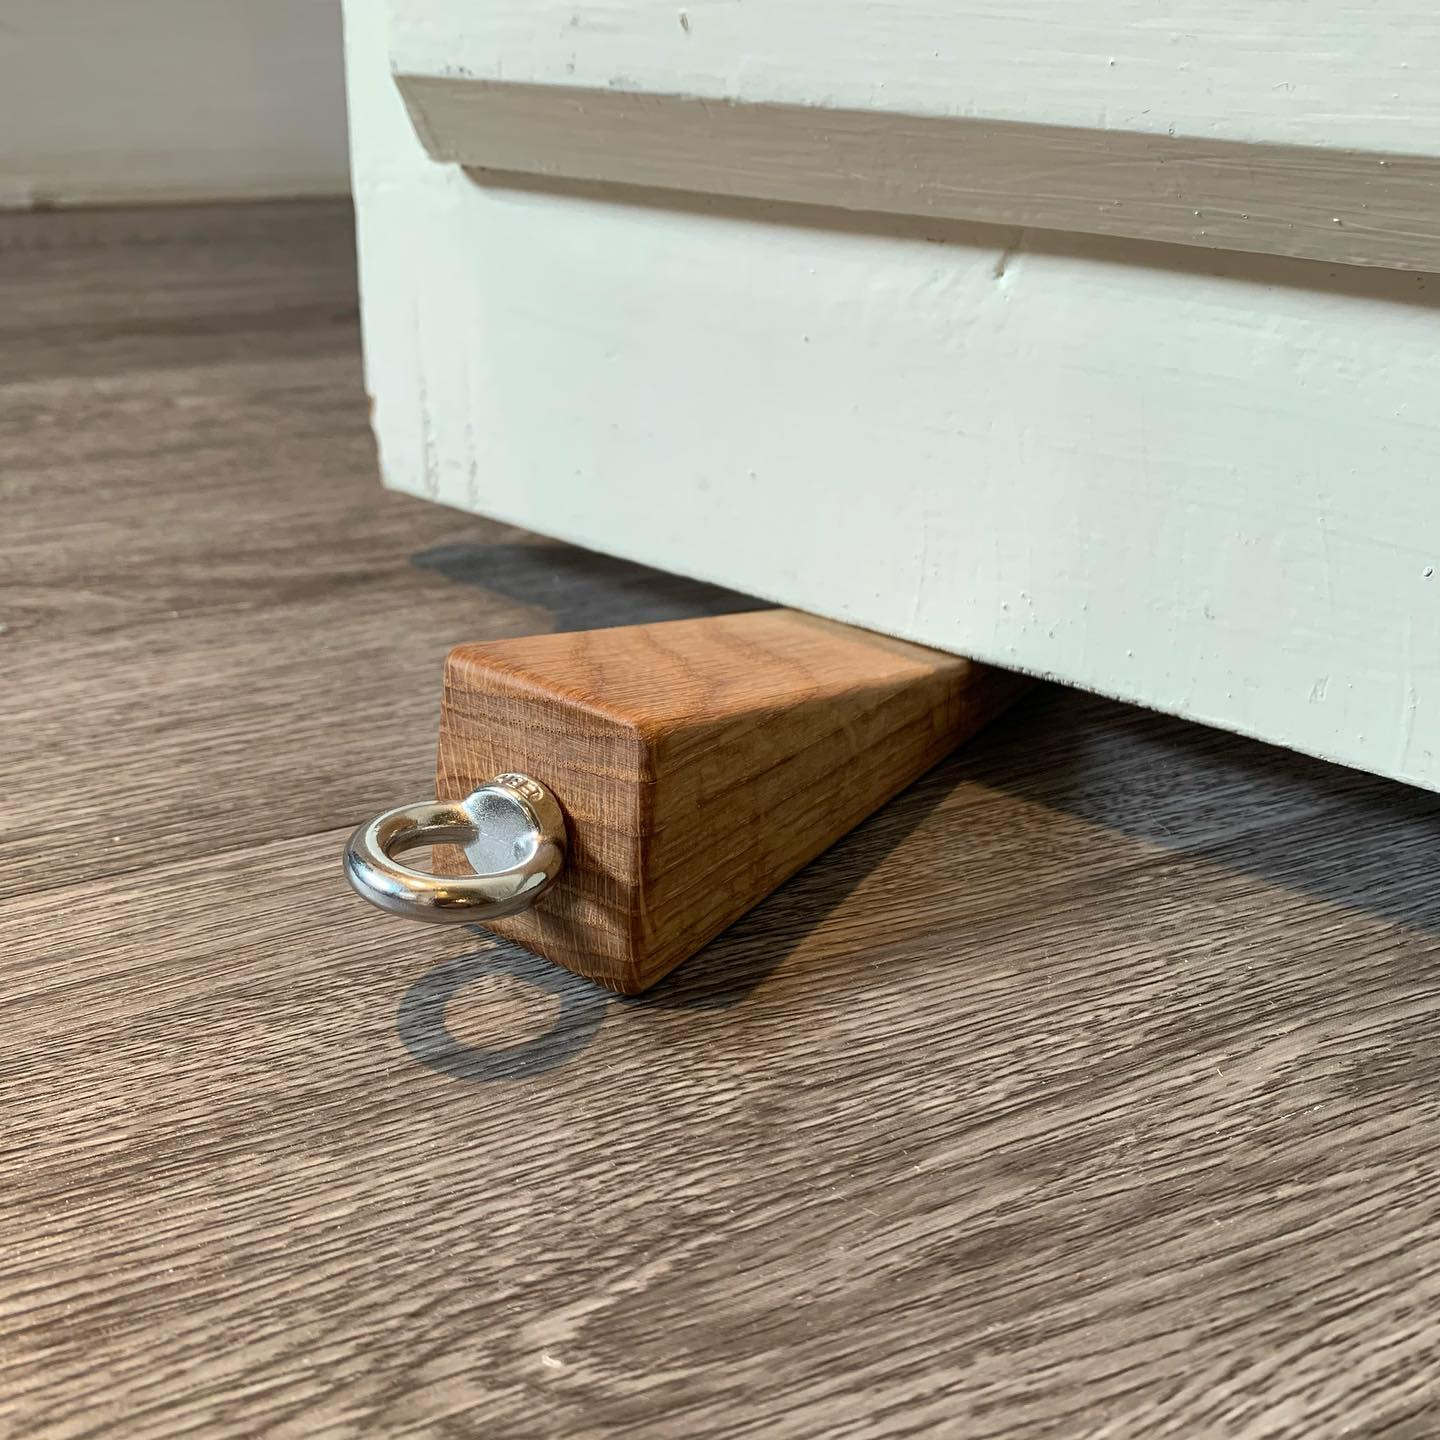 A new addition to our door wedge family is now available online! £12 plus shipping....#newproduct #winter2021 #oak #doorstop #handcrafted #homedecor #industrial #simplebutbeautiful #functionandform #gingerandtweed